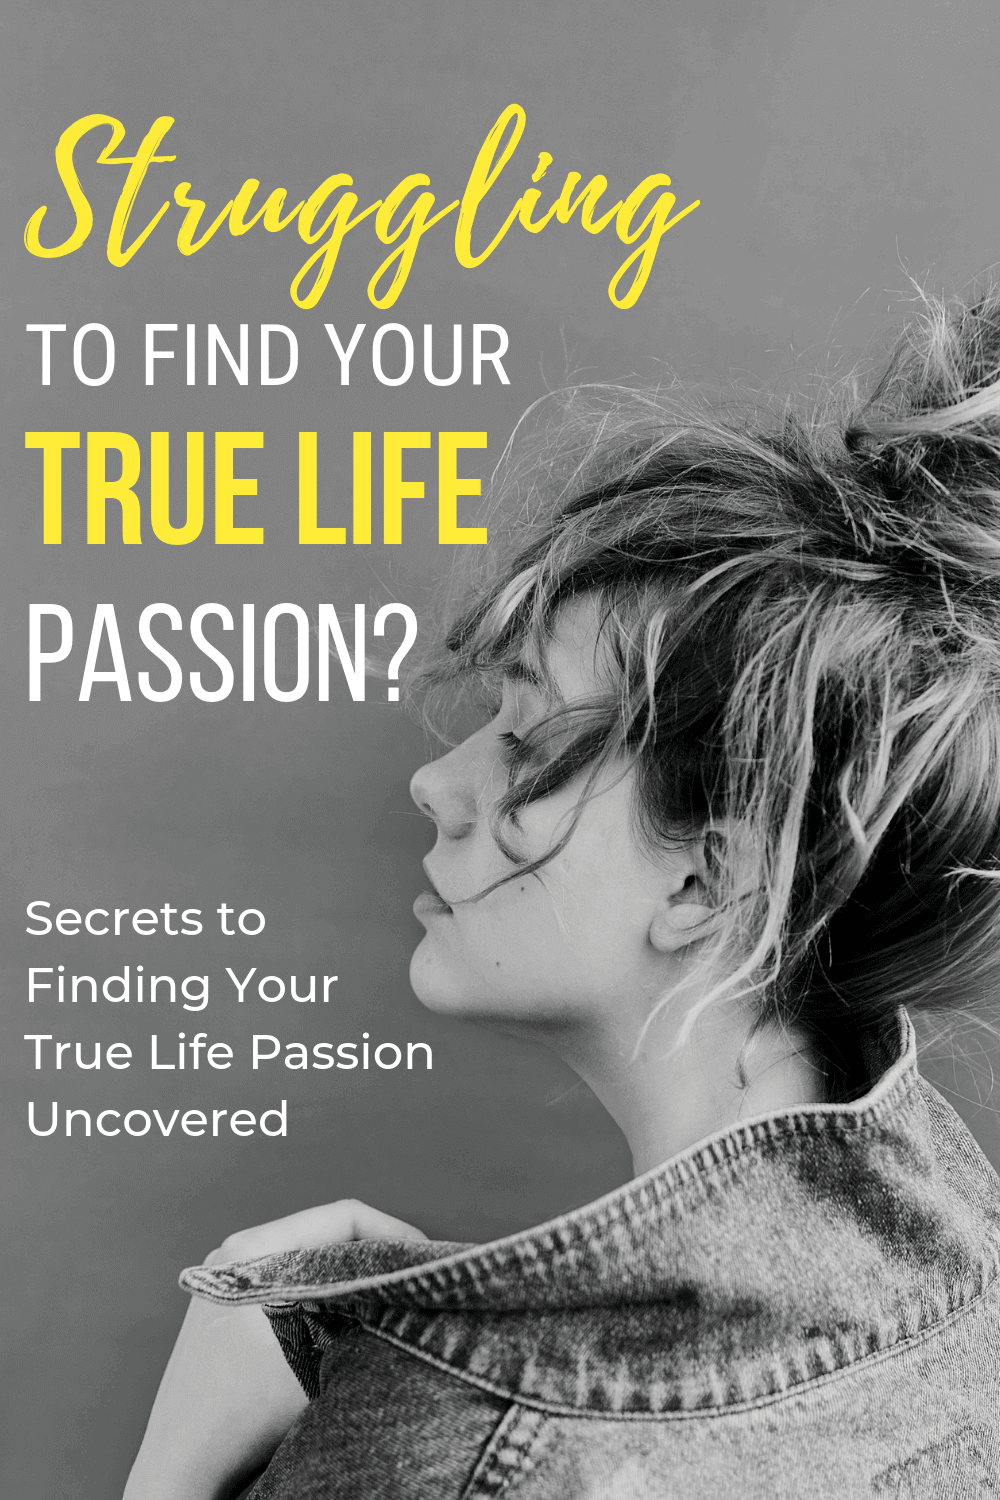 Struggling To Find Your True Life Passion?